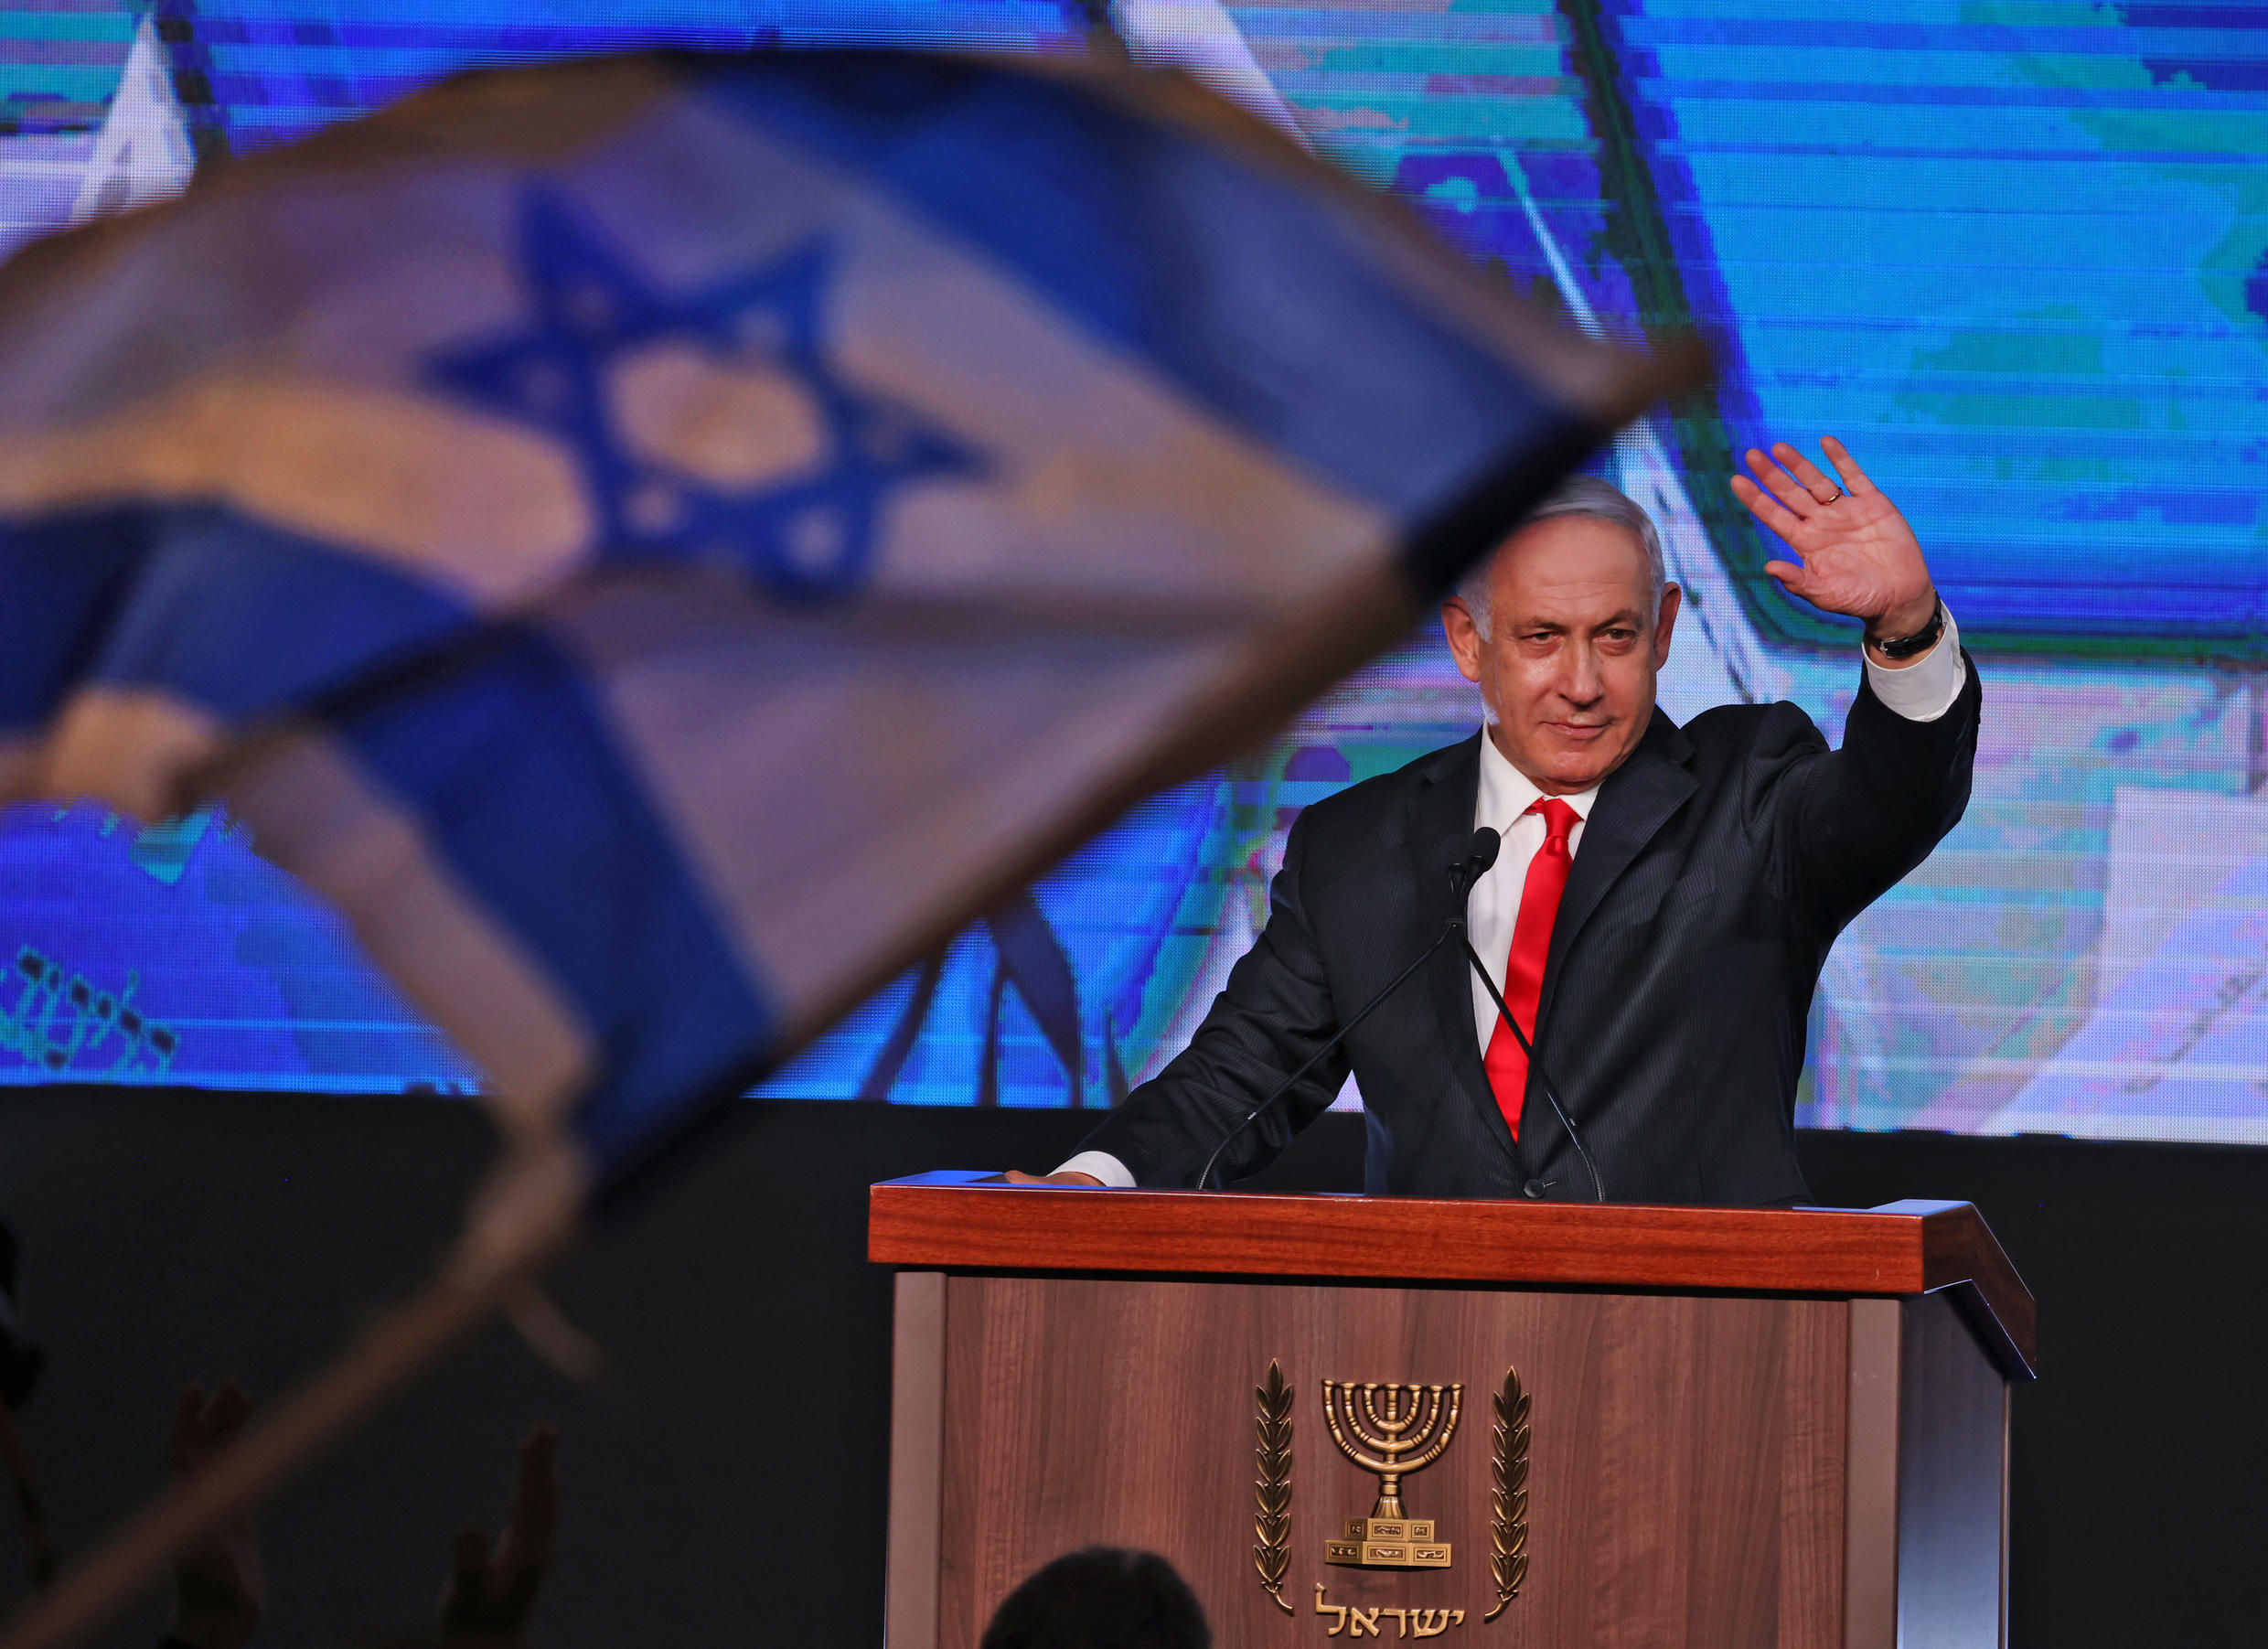 Benjamin Netanyahu is likely to be able to get support from 52 members of parliament -- short of the absolute majority needed of 61